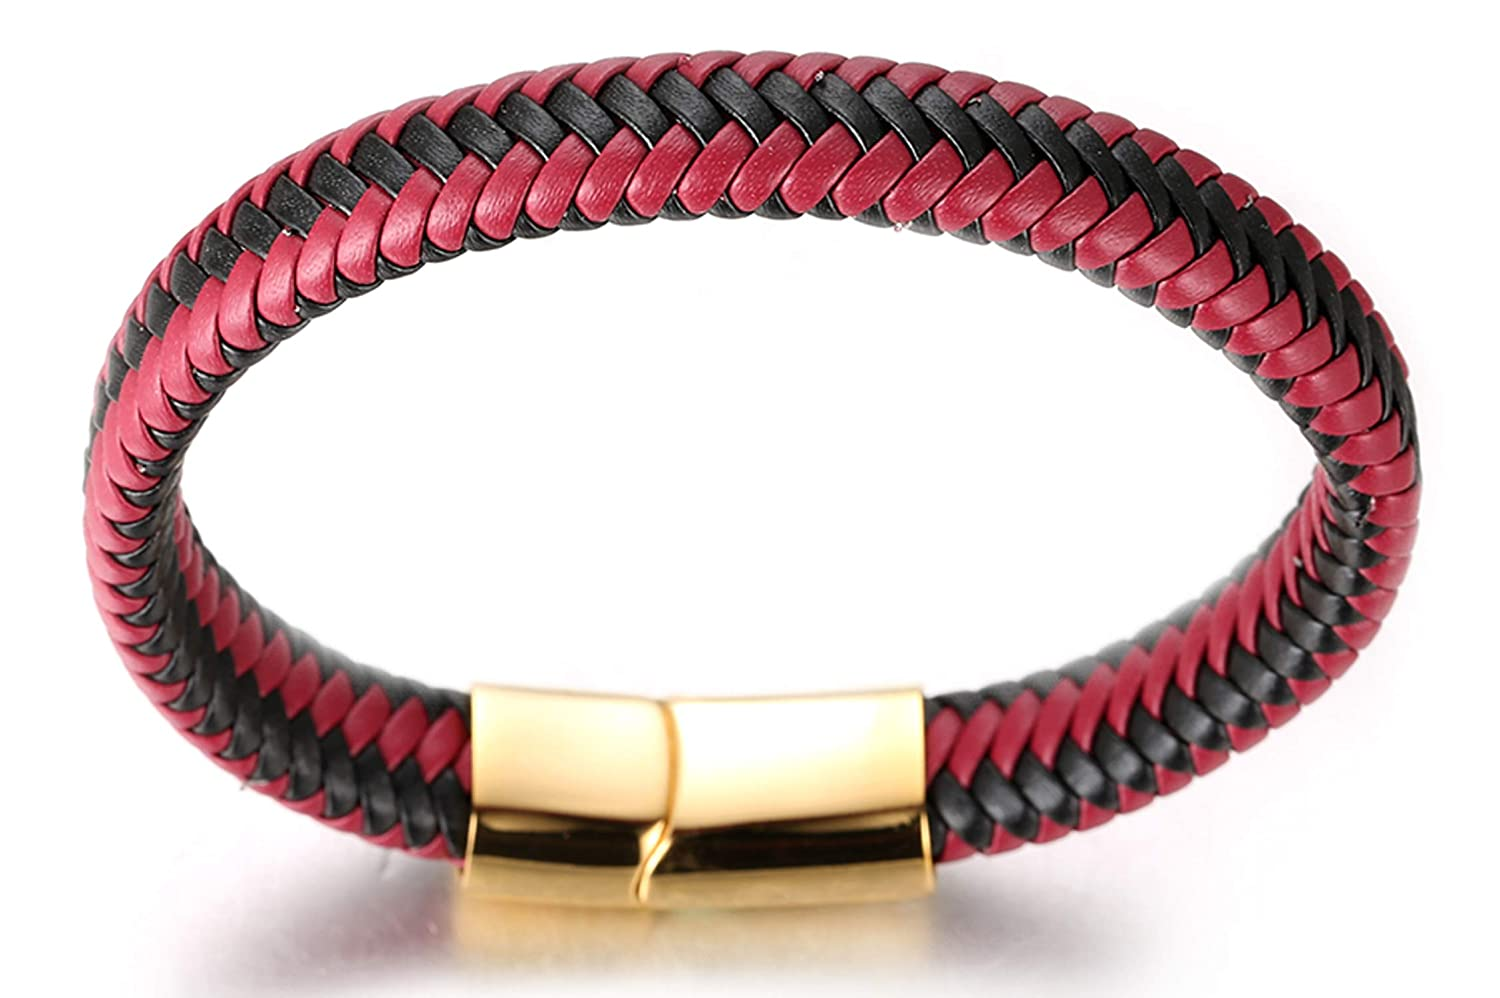 21.5cm Halukakah ● Jazz ● Mens Genuine Leather Jaguar Golden Brown//Classic Piano//Sport Red Handmade Braid Bracelet Titanium Magnetic Clasp 8.5 with FREE Giftbox Party Passion Red Gold